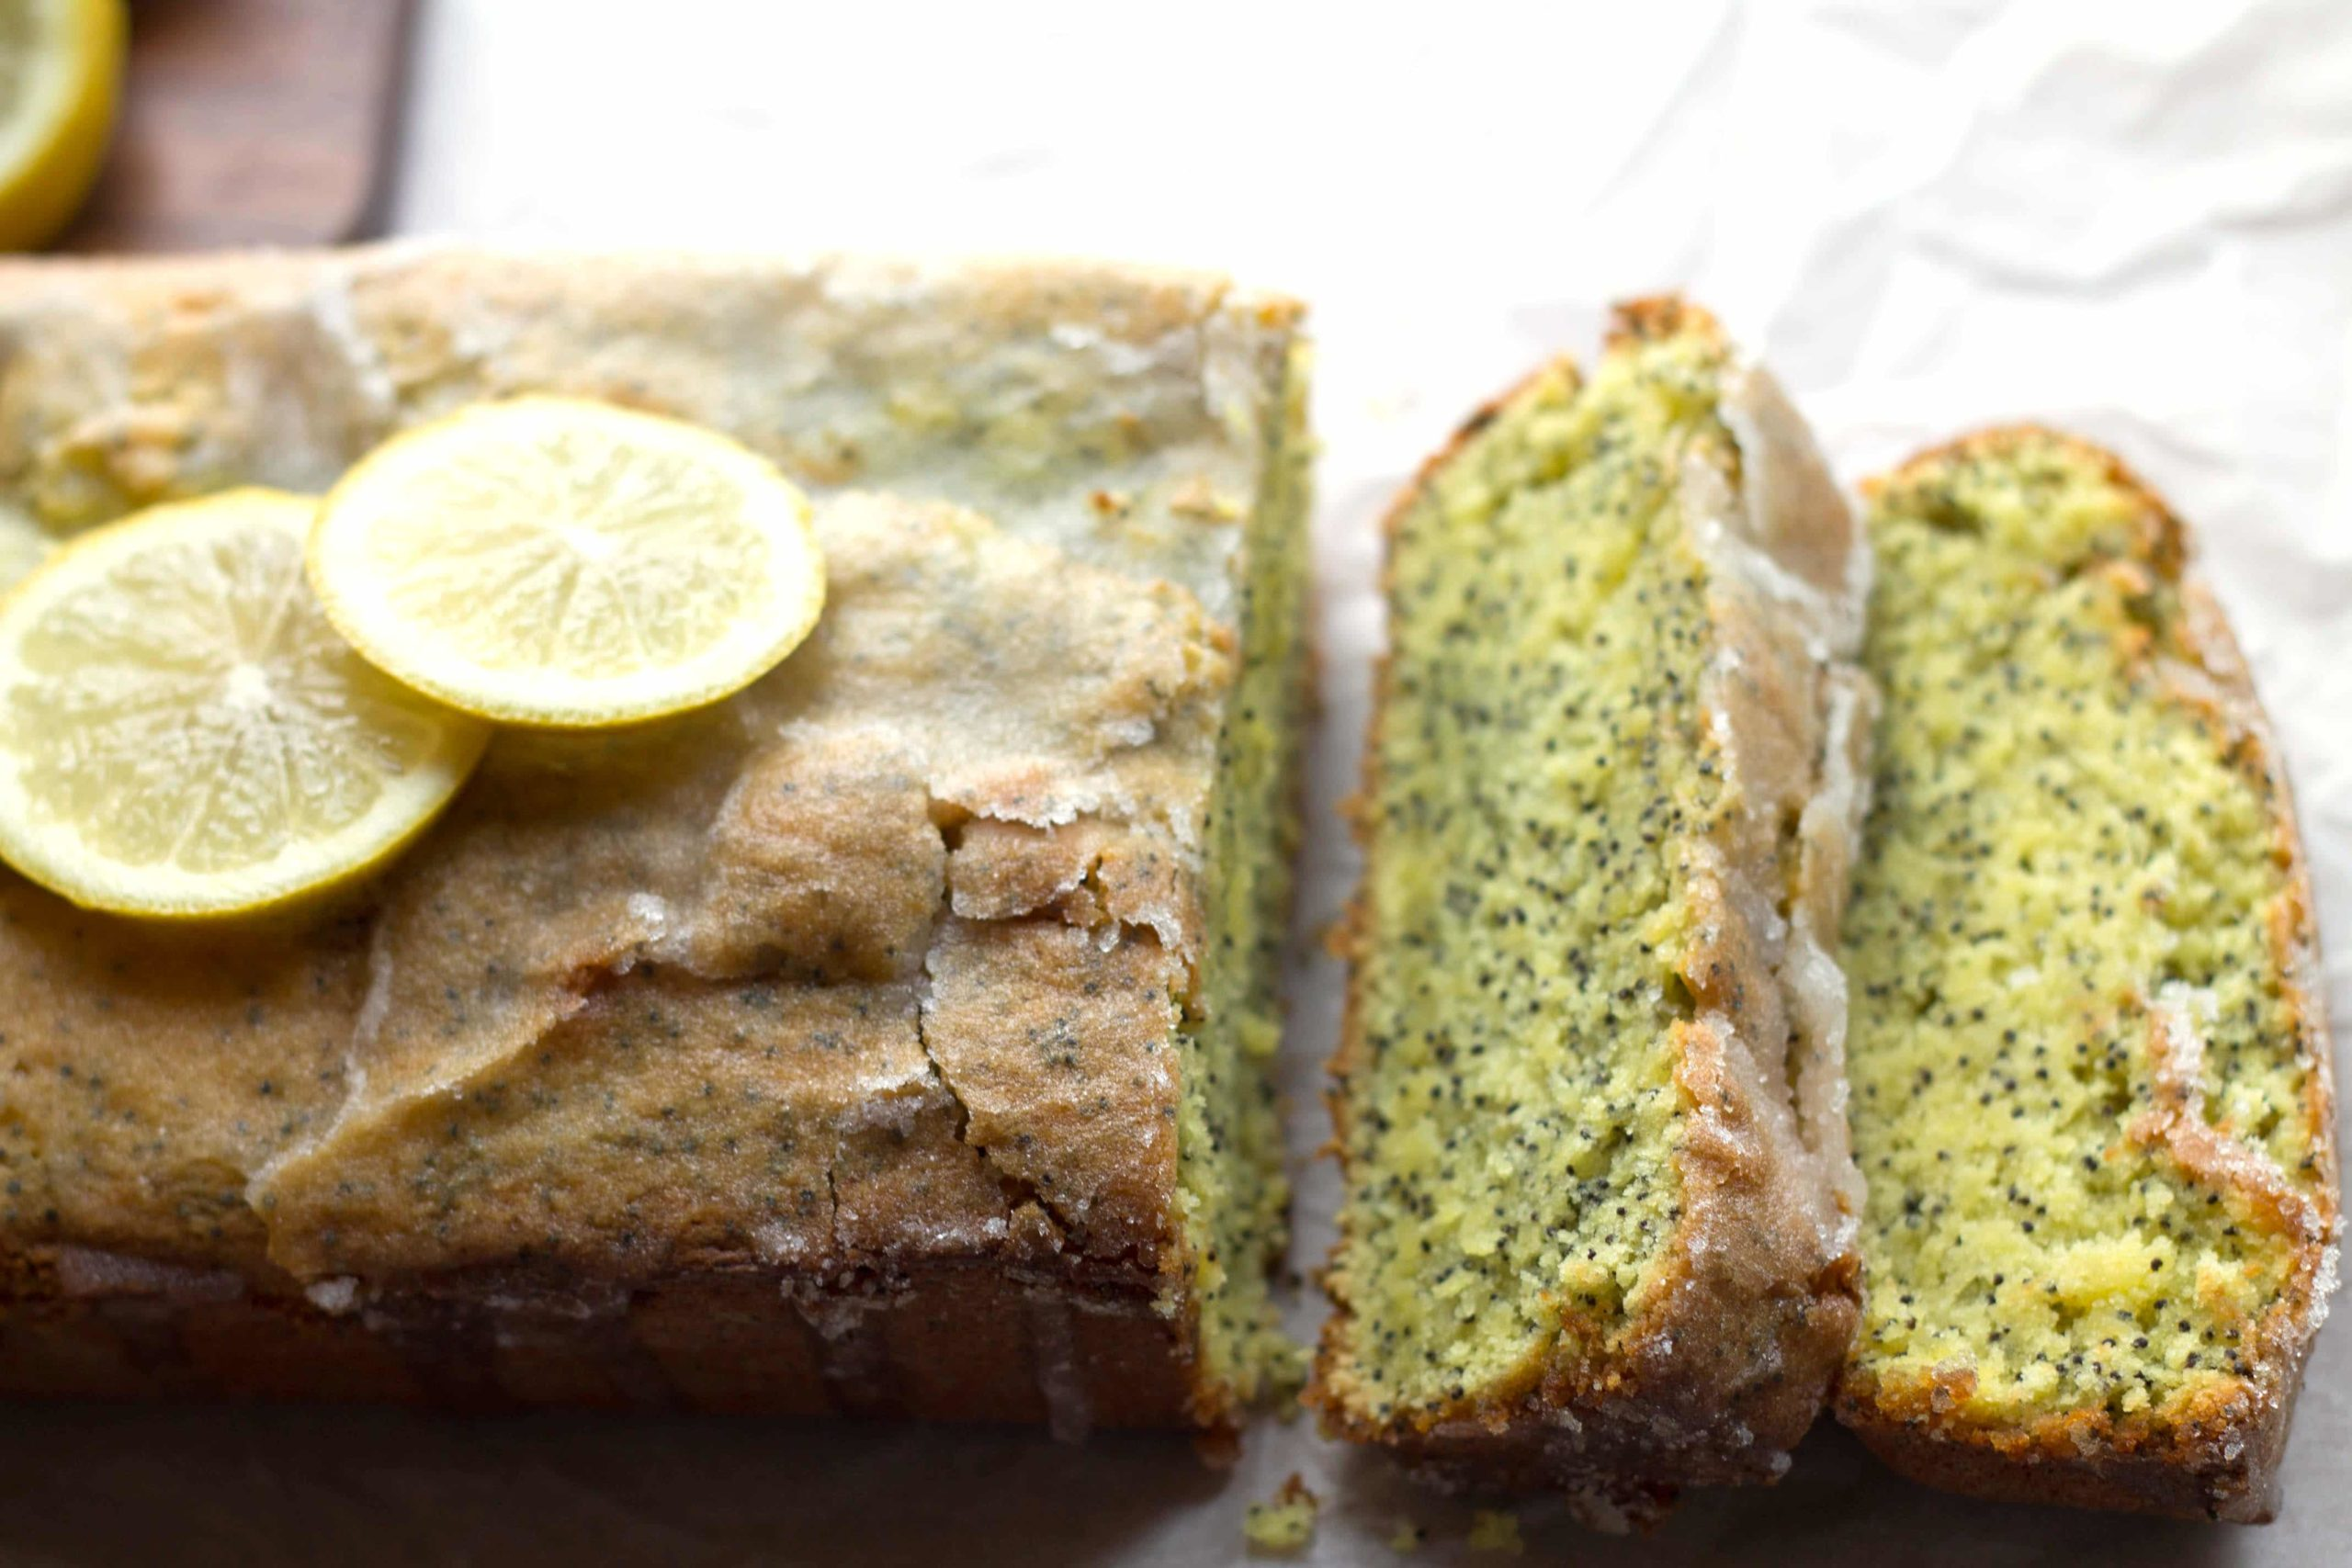 lemon poppy seed drizzle cake with two slices and lemon slices on top